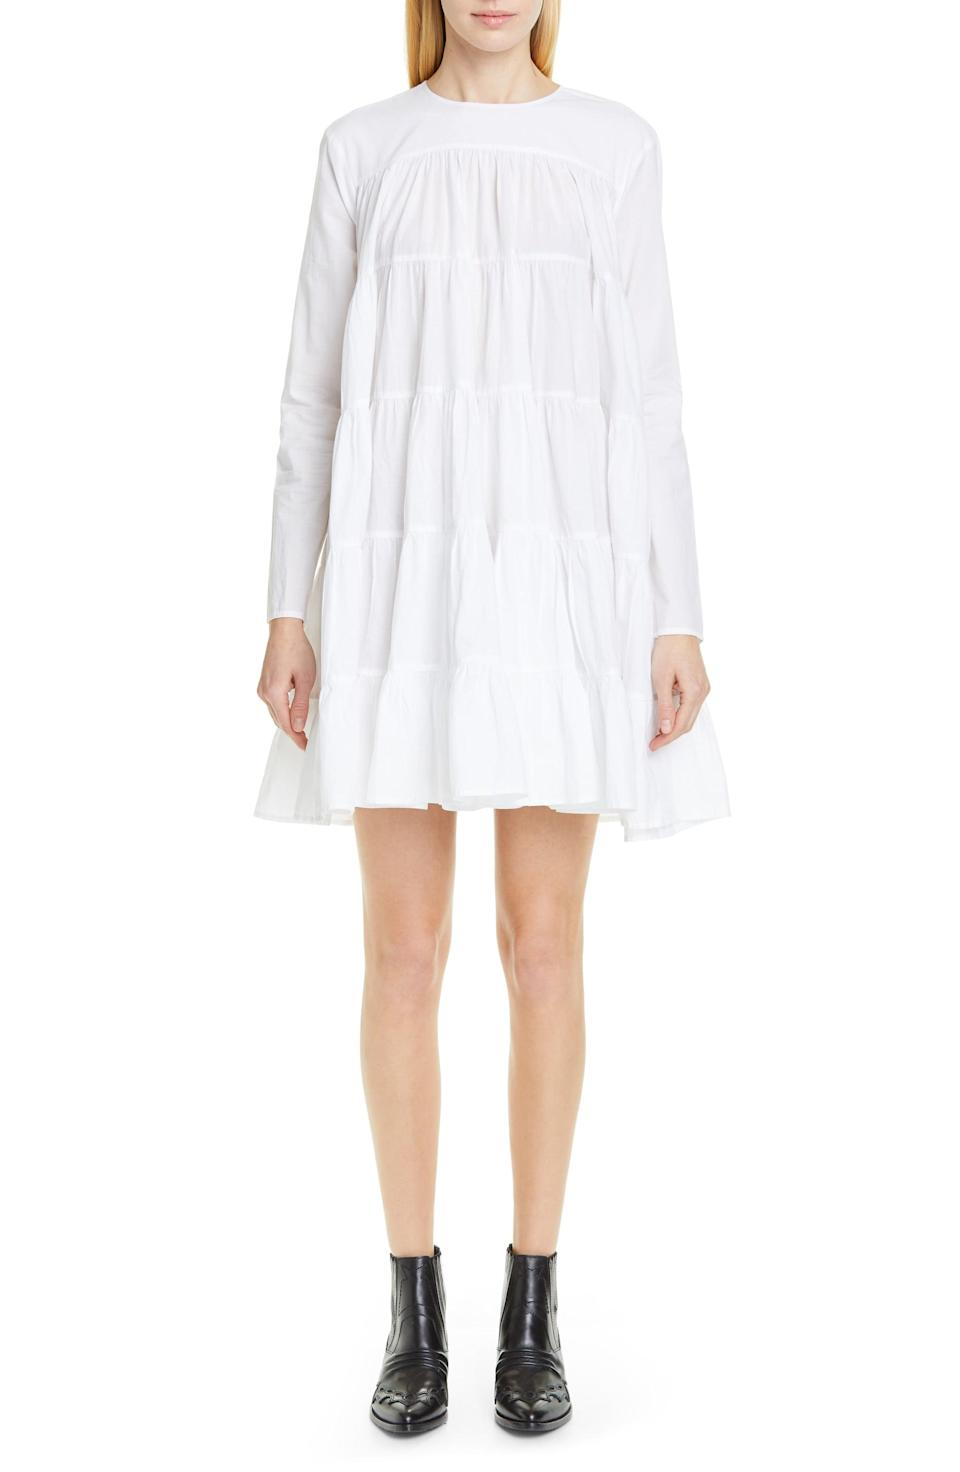 <p>Pair this <span>Merlette Soliman Tiered Minidress</span> ($320) with strappy sandals or chunky sneakers.</p>